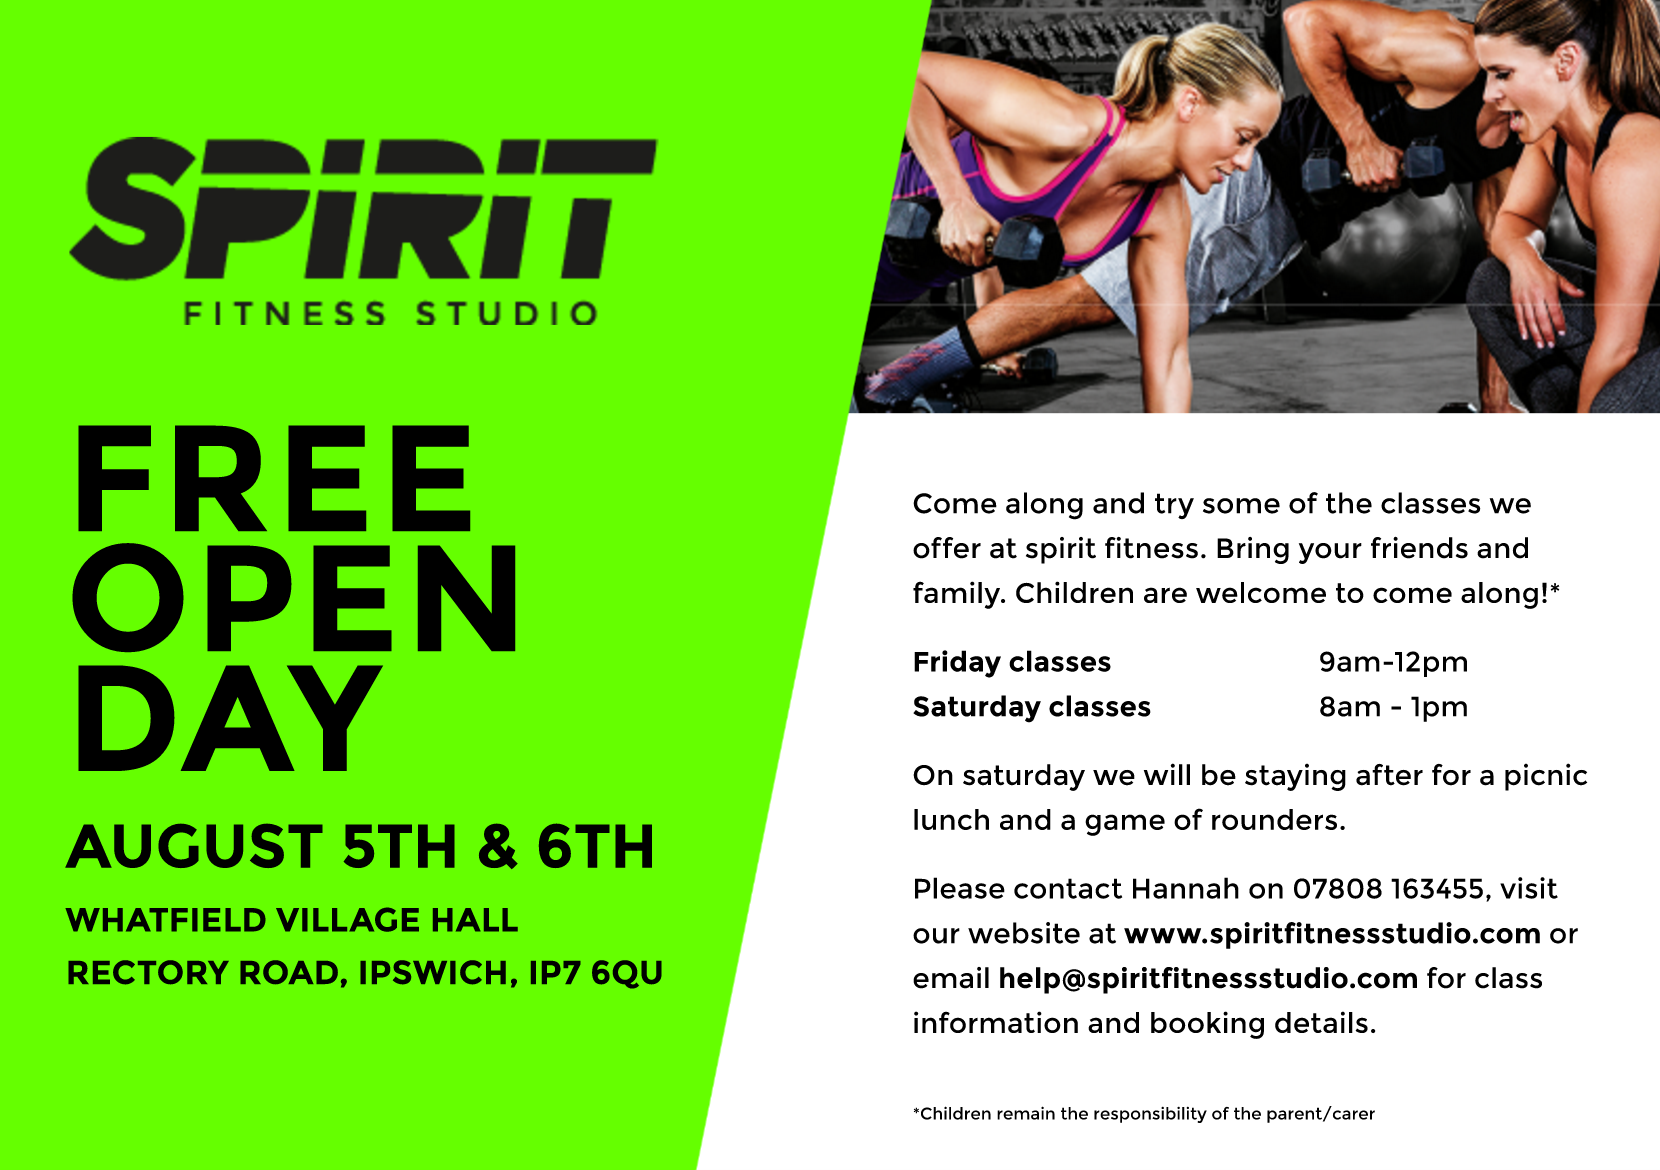 Come and join us for our August open day.  We will be showcasing the latest music and moves for all the classes we teach at Spirit Fitness Studio.  Please check out the Class Timetable below and get in touch to reserve your place!  Bring a picnic lunch and stay after classes on Saturday for a game of rounders!   FRIDAY 5TH AUGUST       0900-0930  INSANITY 0930-1000   P90X 1000-1030   PIYO 1030-1100   PUMP 1100-1130   CORE CONTROL 1130-1200   BALANCE 1200-1300   MANDUKYA YOGA   SATURDAY 6TH AUGUST  0800-0830   METAFIT 0830-0900   PUMP 0900-0930   CORE CONTROL 0930-1000   HIIT 1000-1030   KETTLERCISE 1030-1100   BALANCE 1100-1130   INSANITY 1130-1200   P90X